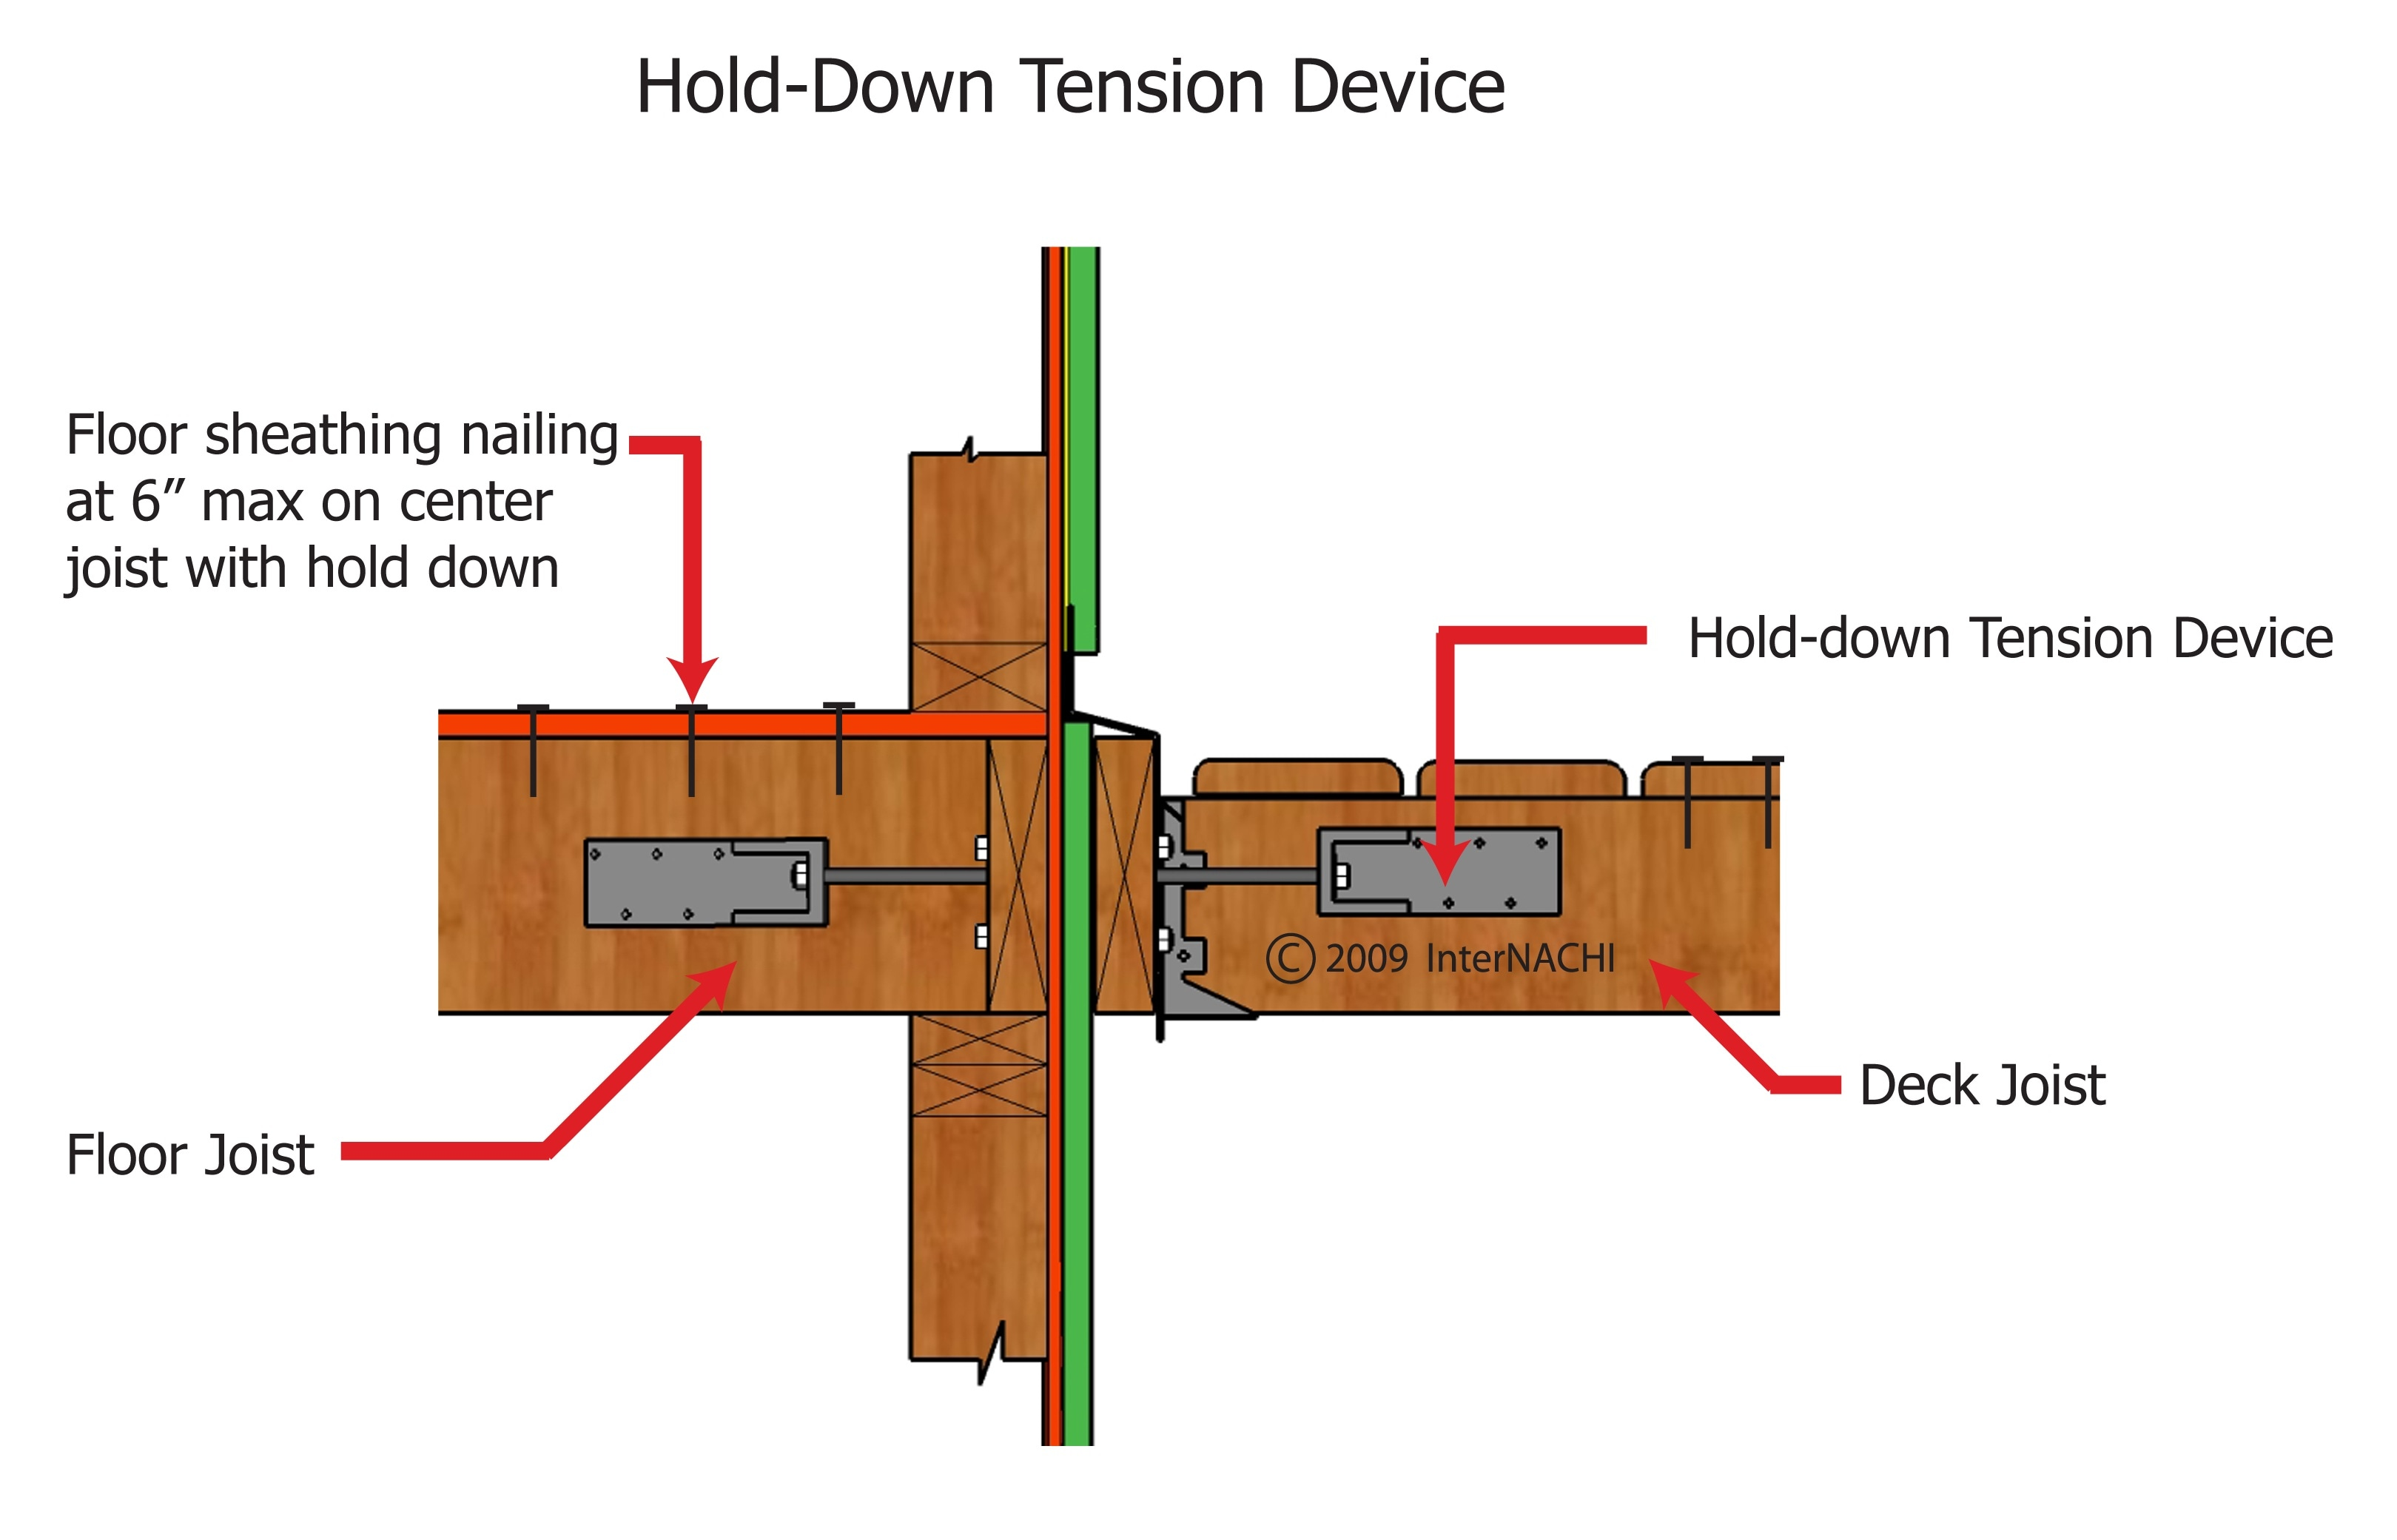 Hold-down tension device.